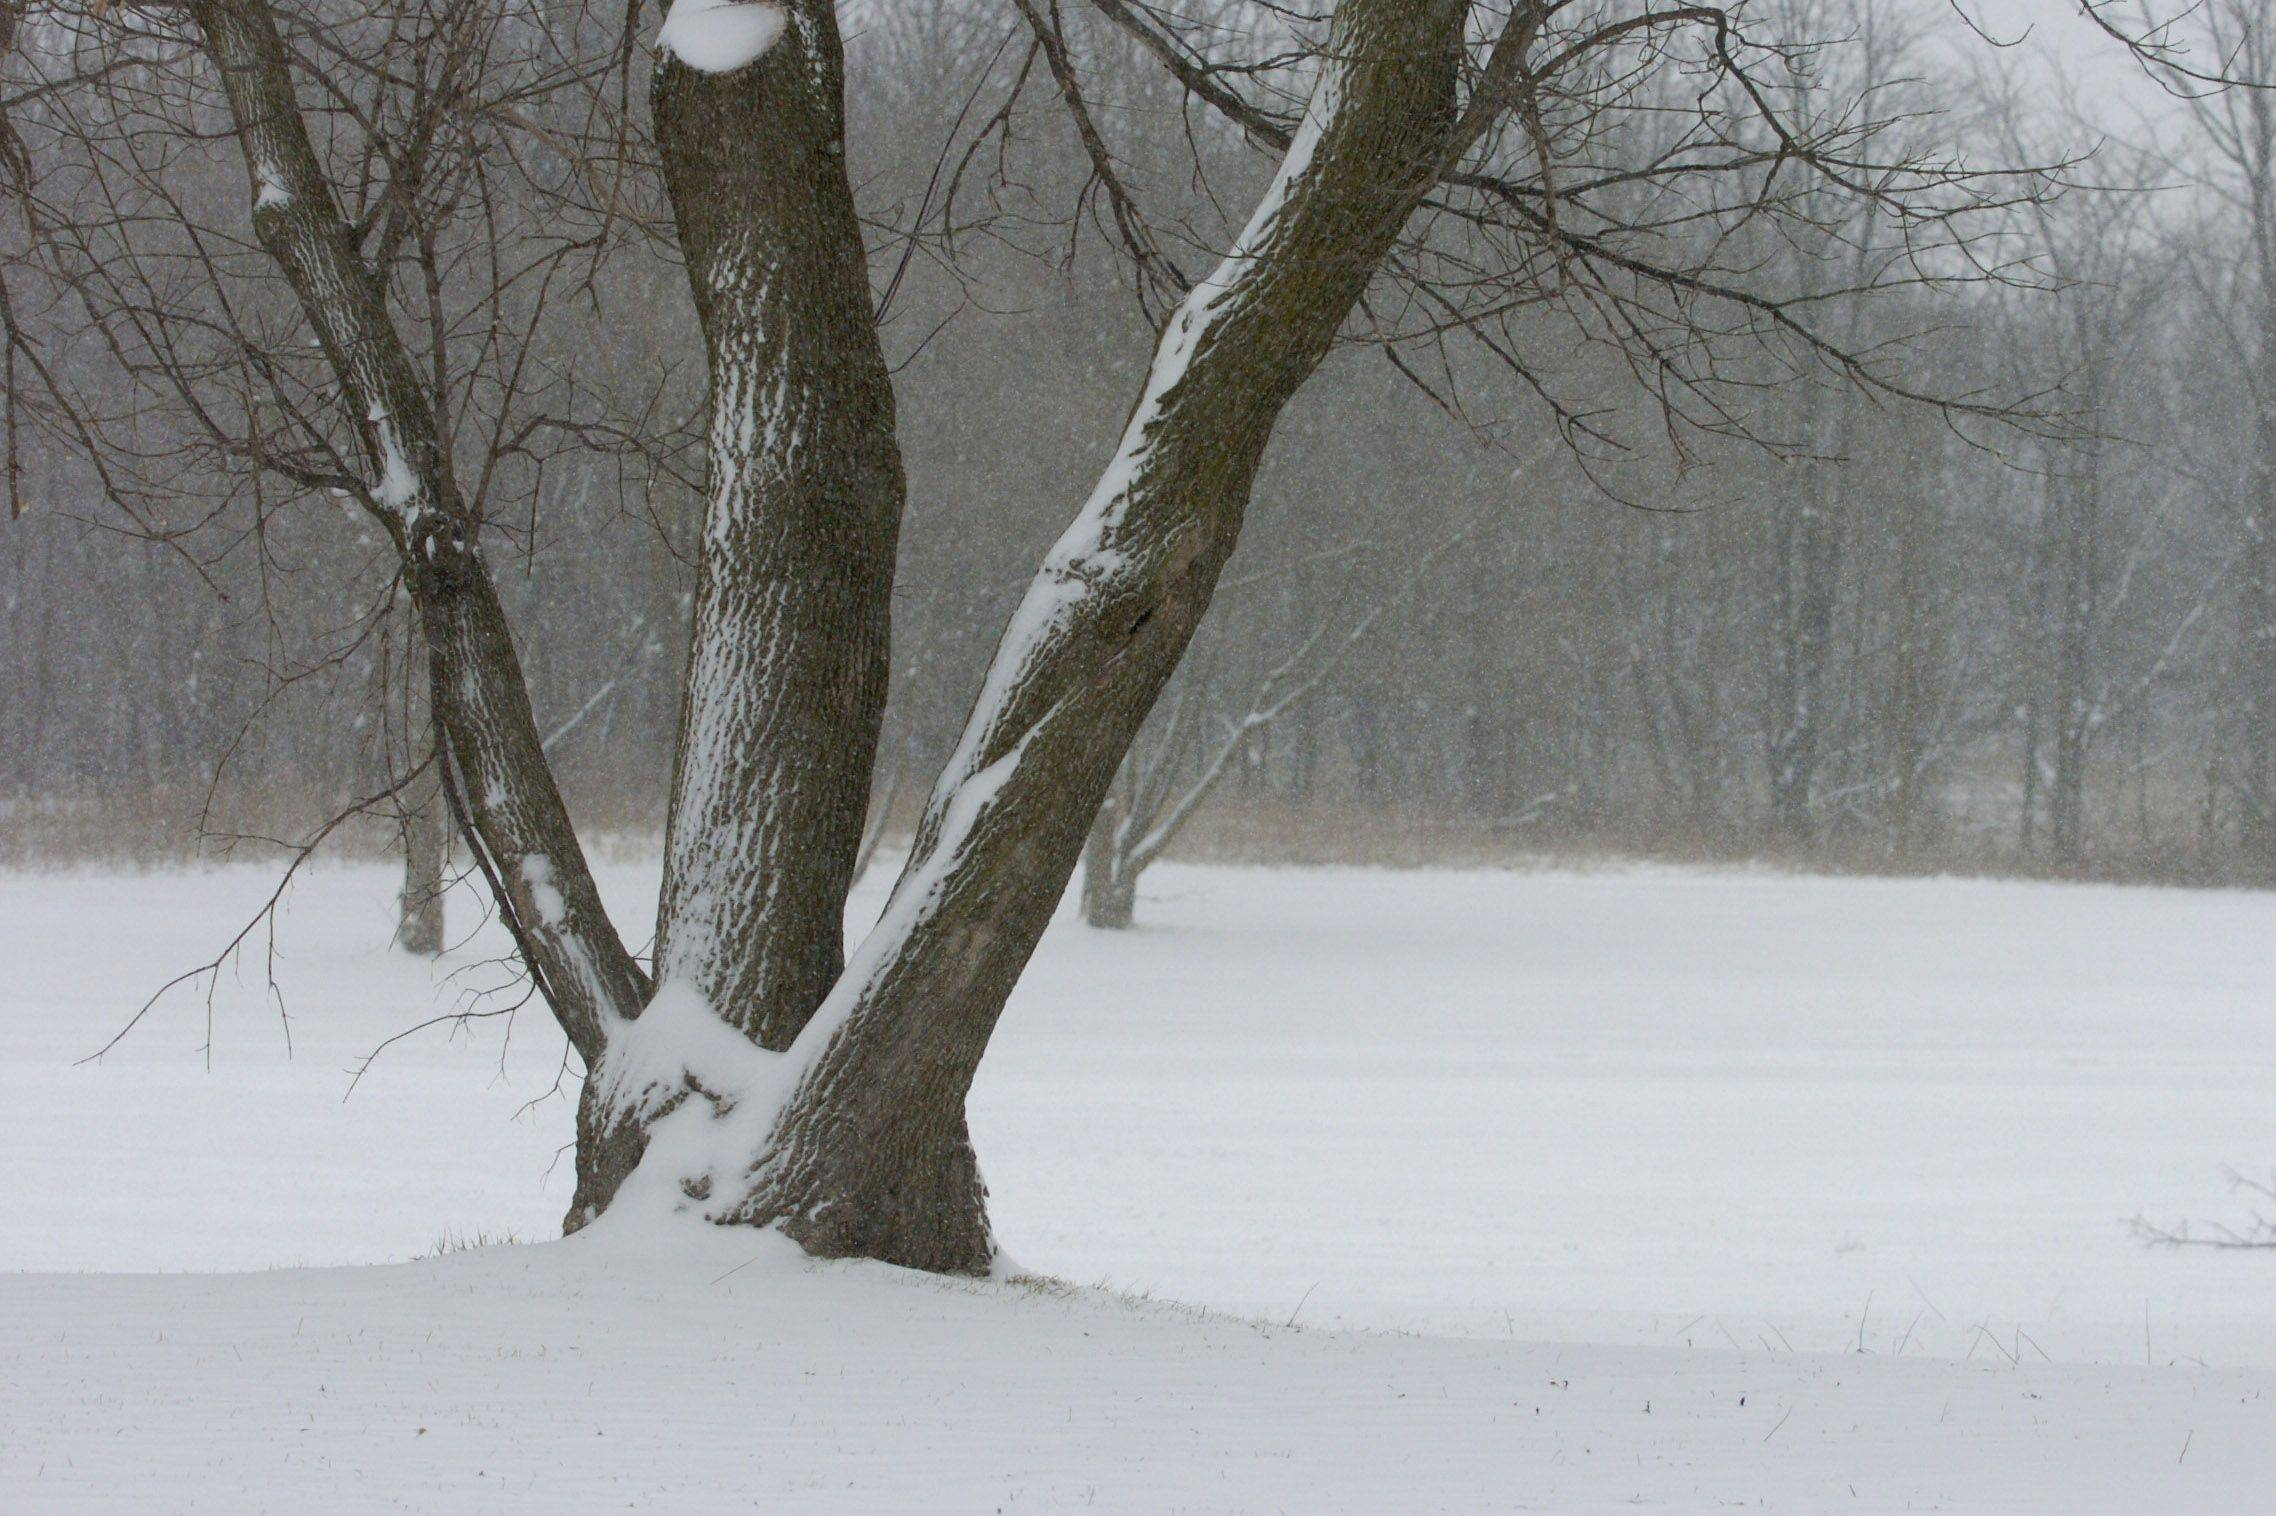 Snow blankets Bode East Forest Preserve, a day after 50 degree temperatures.